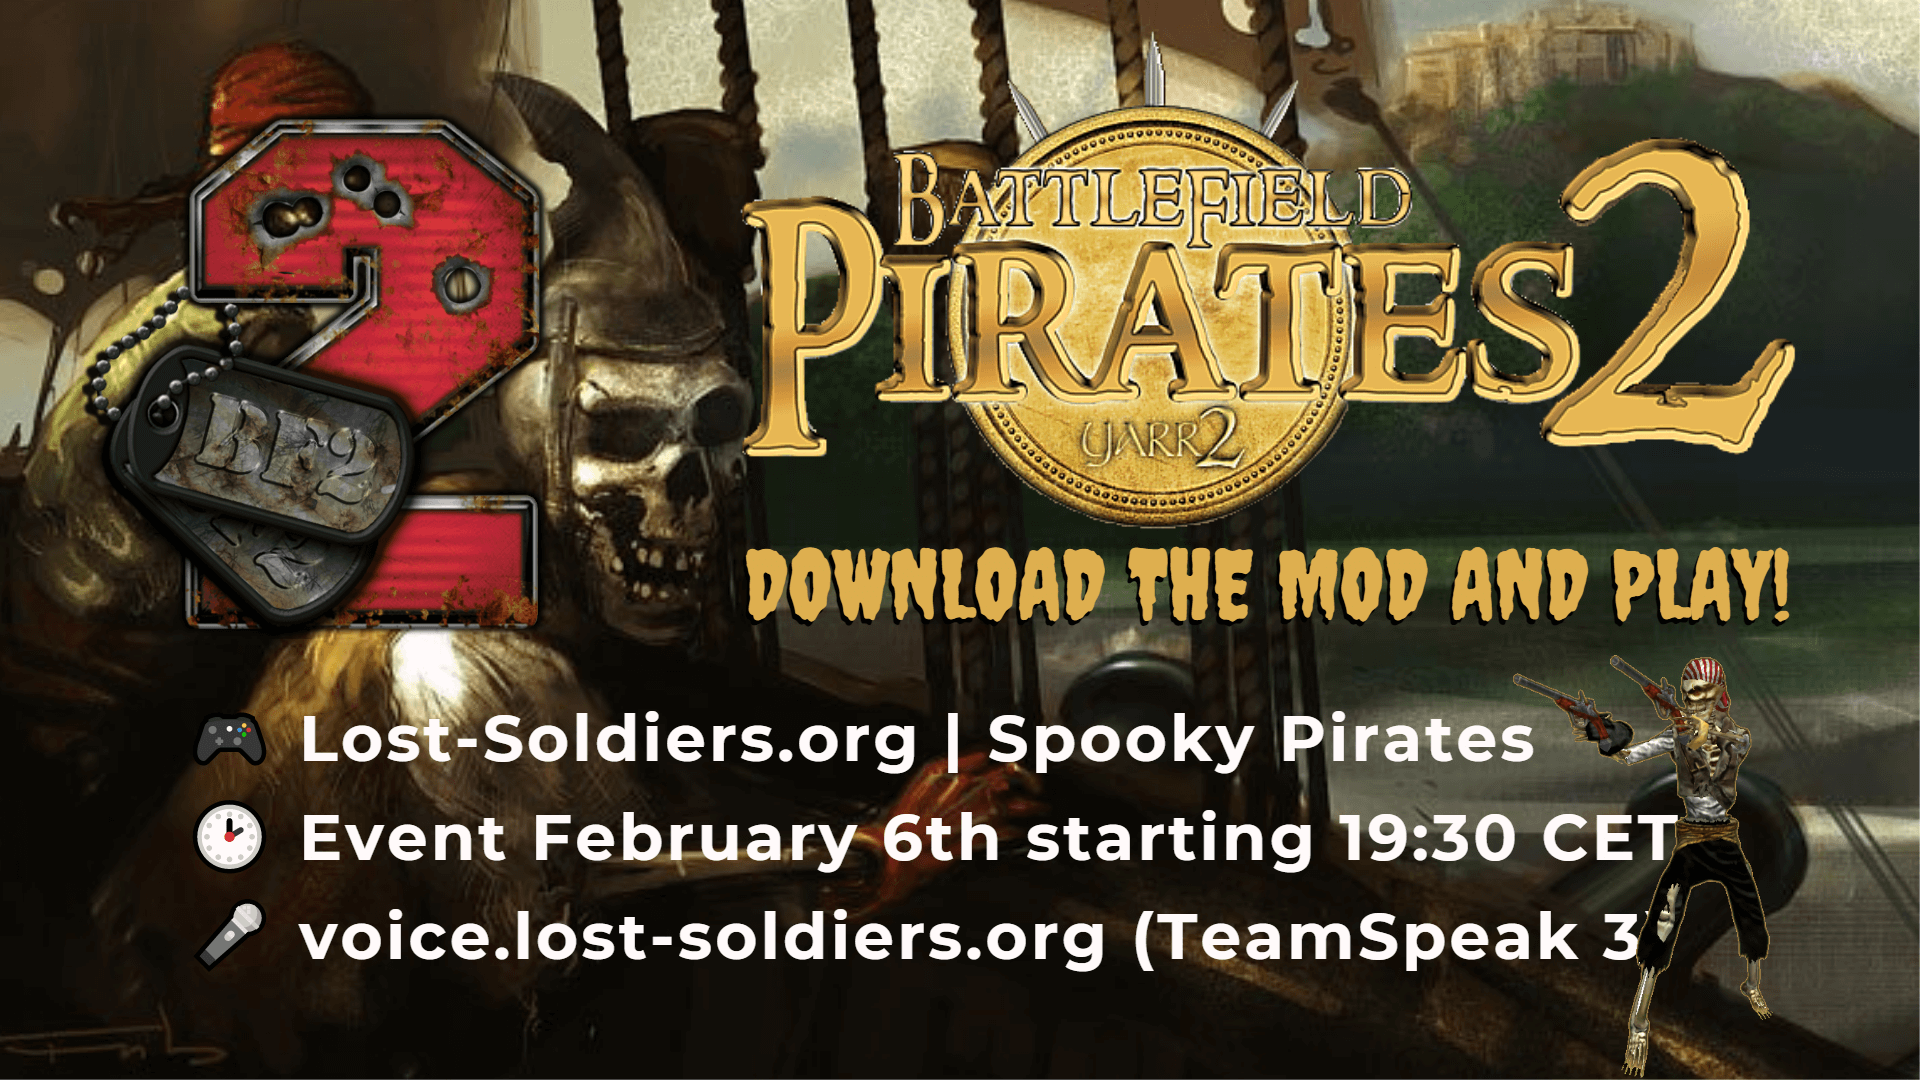 https://lost-soldiers.org/images/news-pics/Halloween-Pirates-Night-2021-min.png